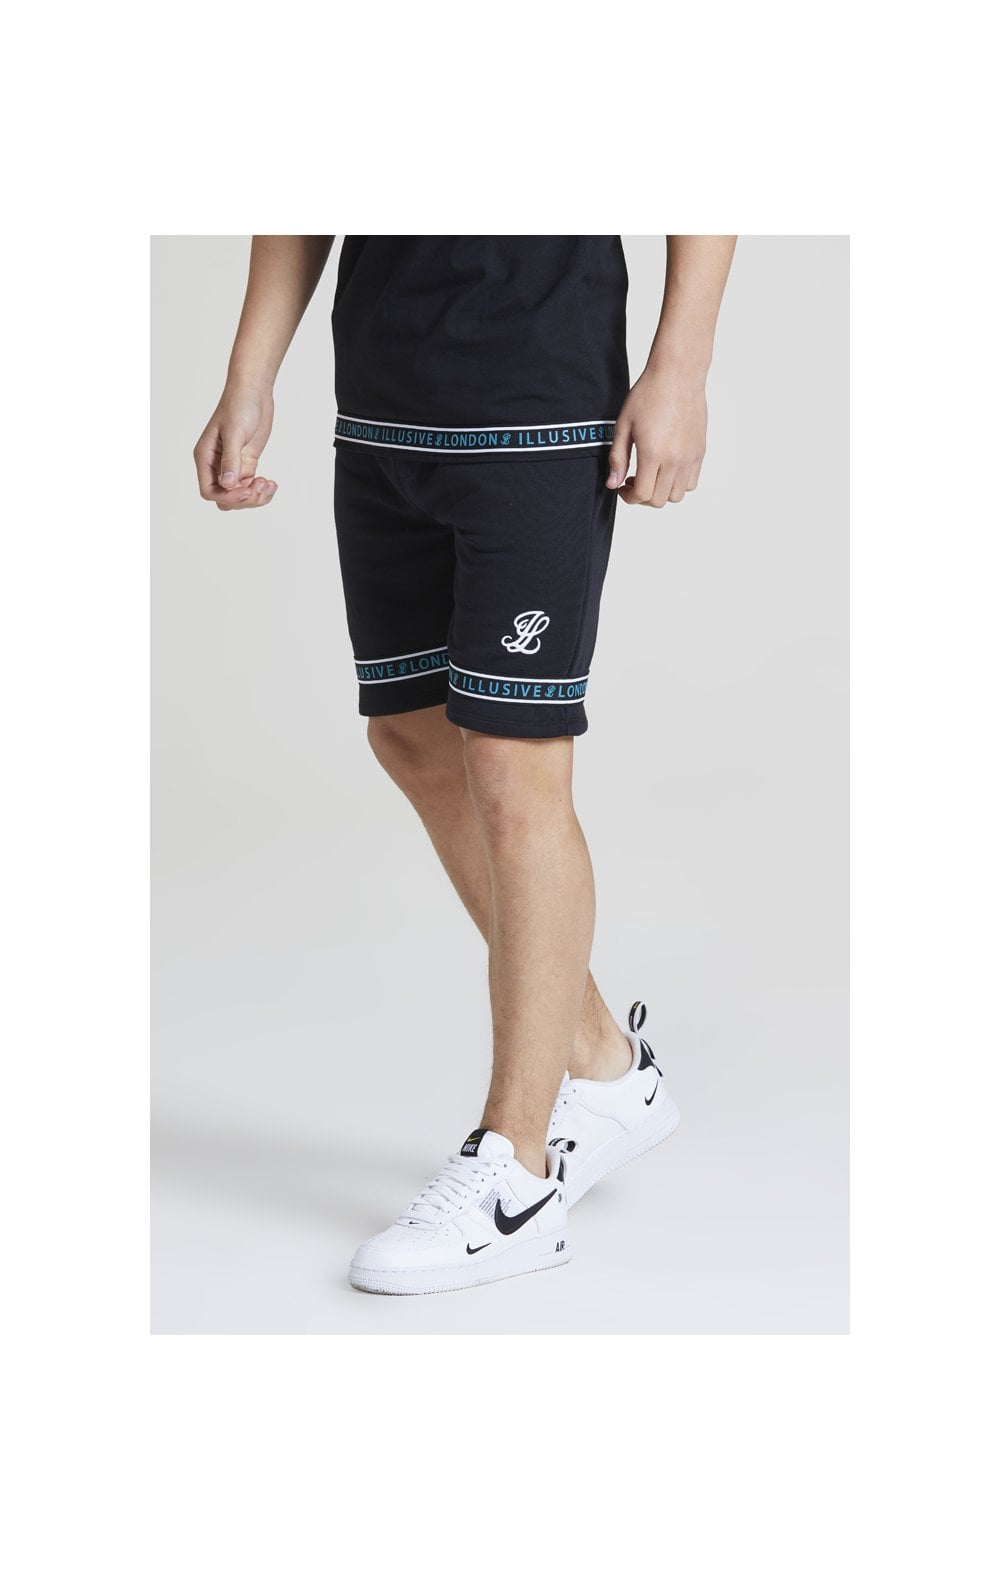 Illusive London Branded Jersey Shorts - Black & Teal Green